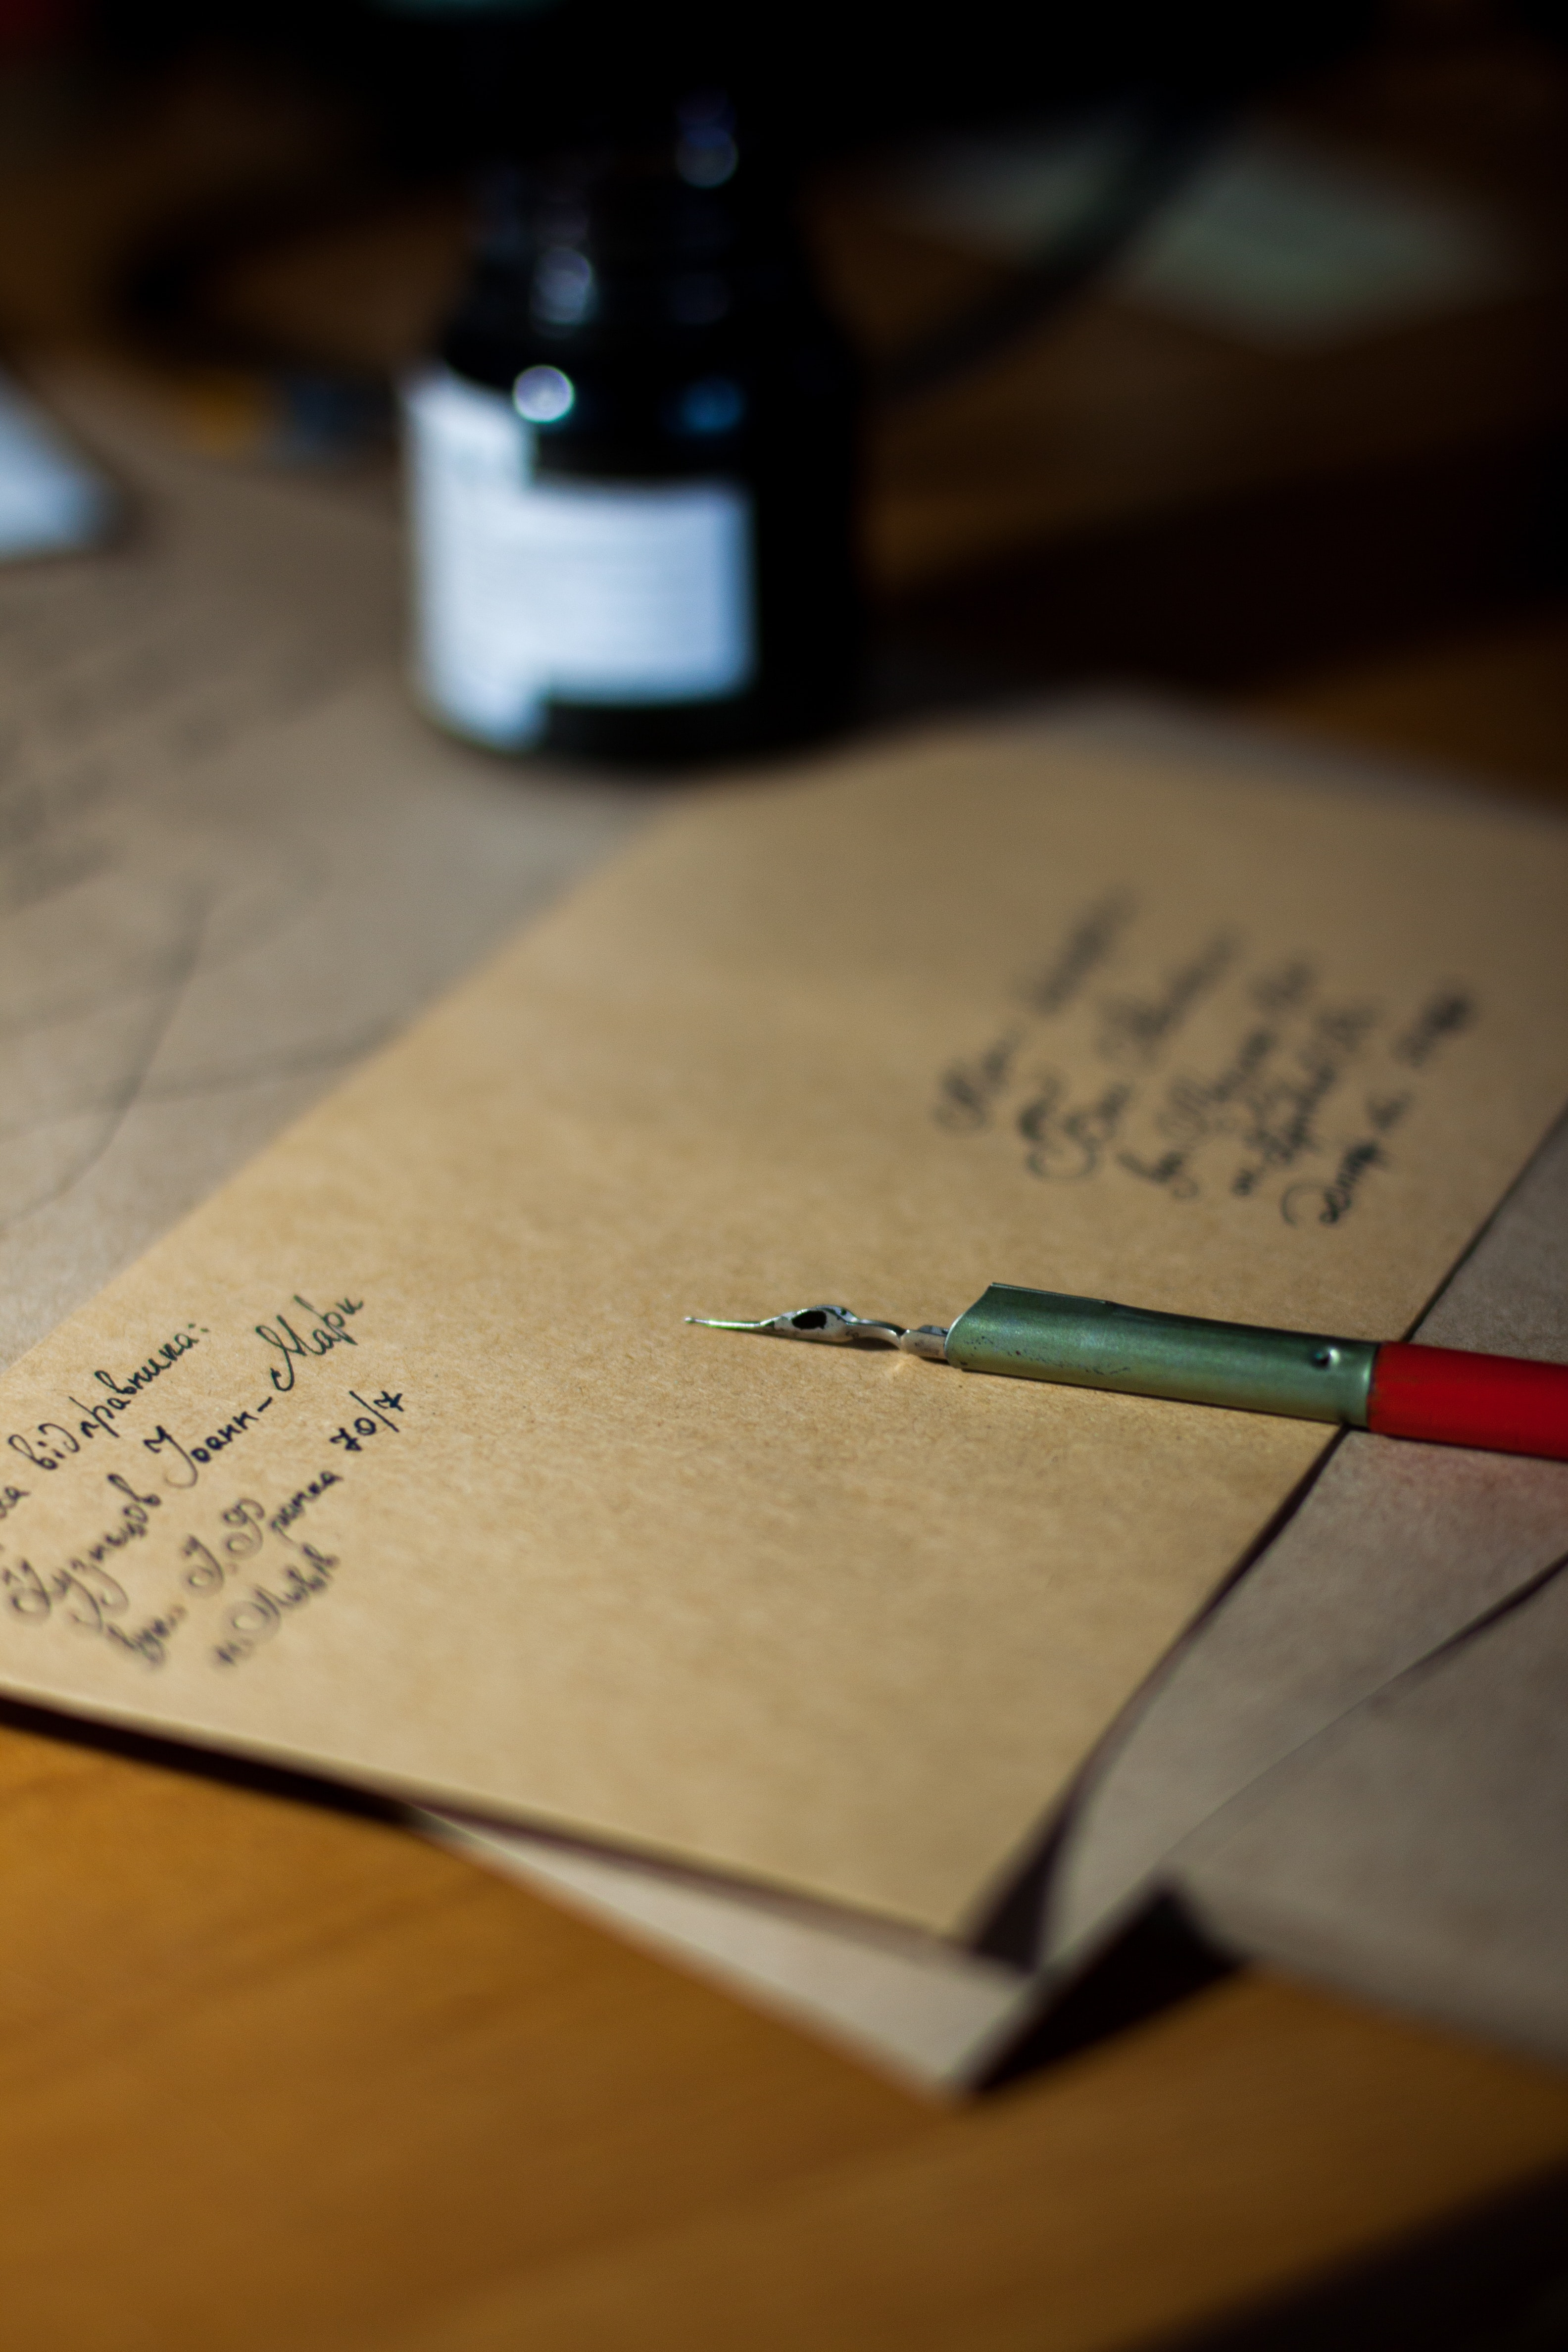 Teachers can assess students' writing abilities by having them write a letter